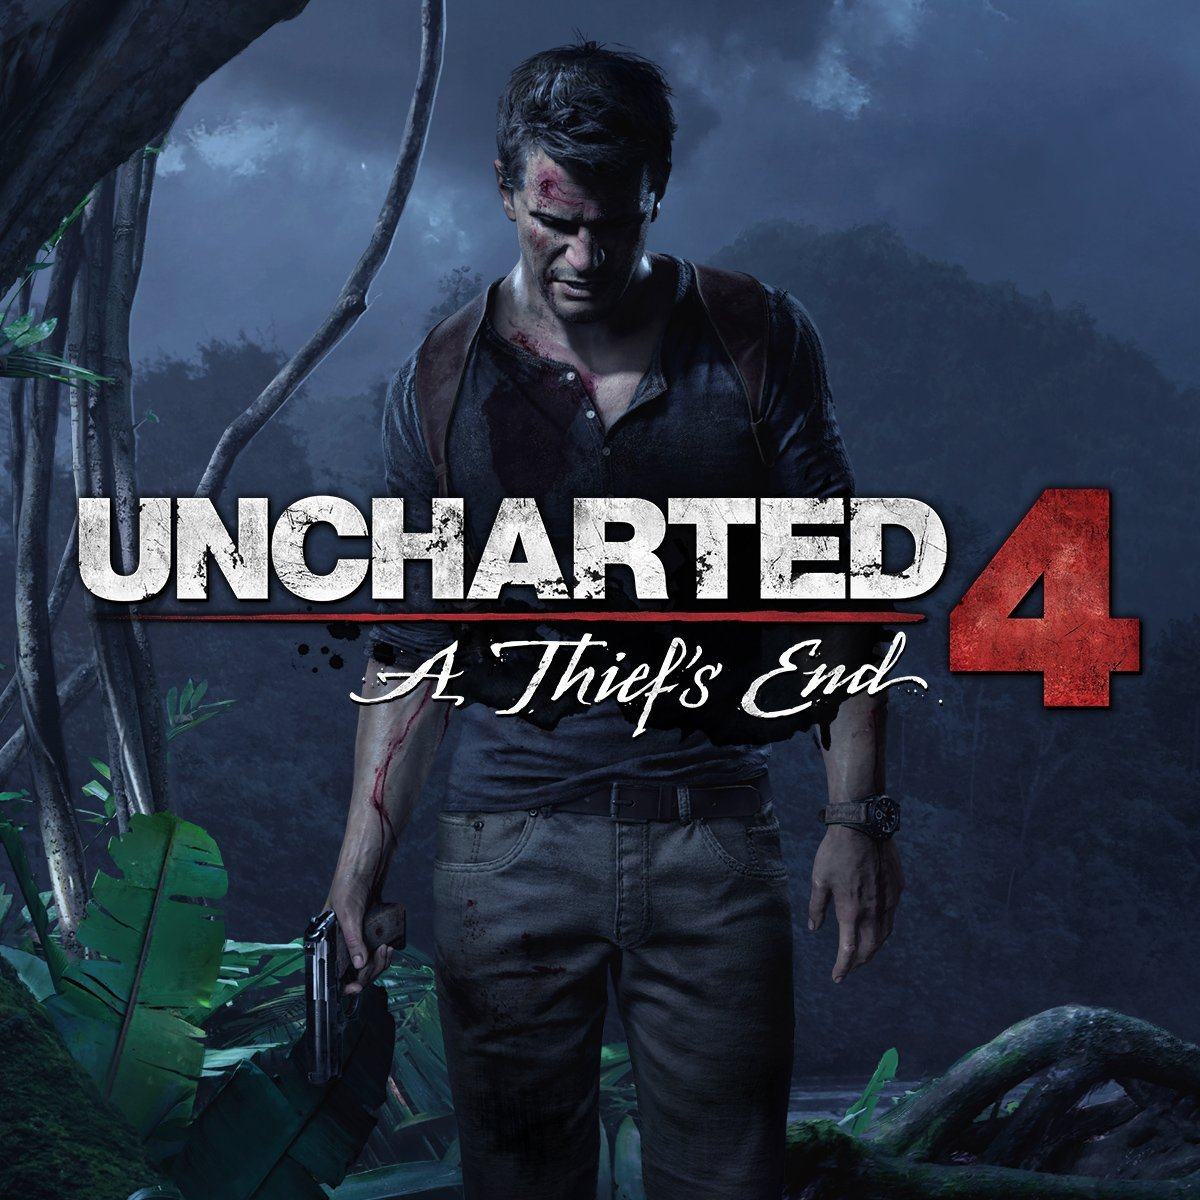 New 2016 Uncharted 4 Release Date Rumored